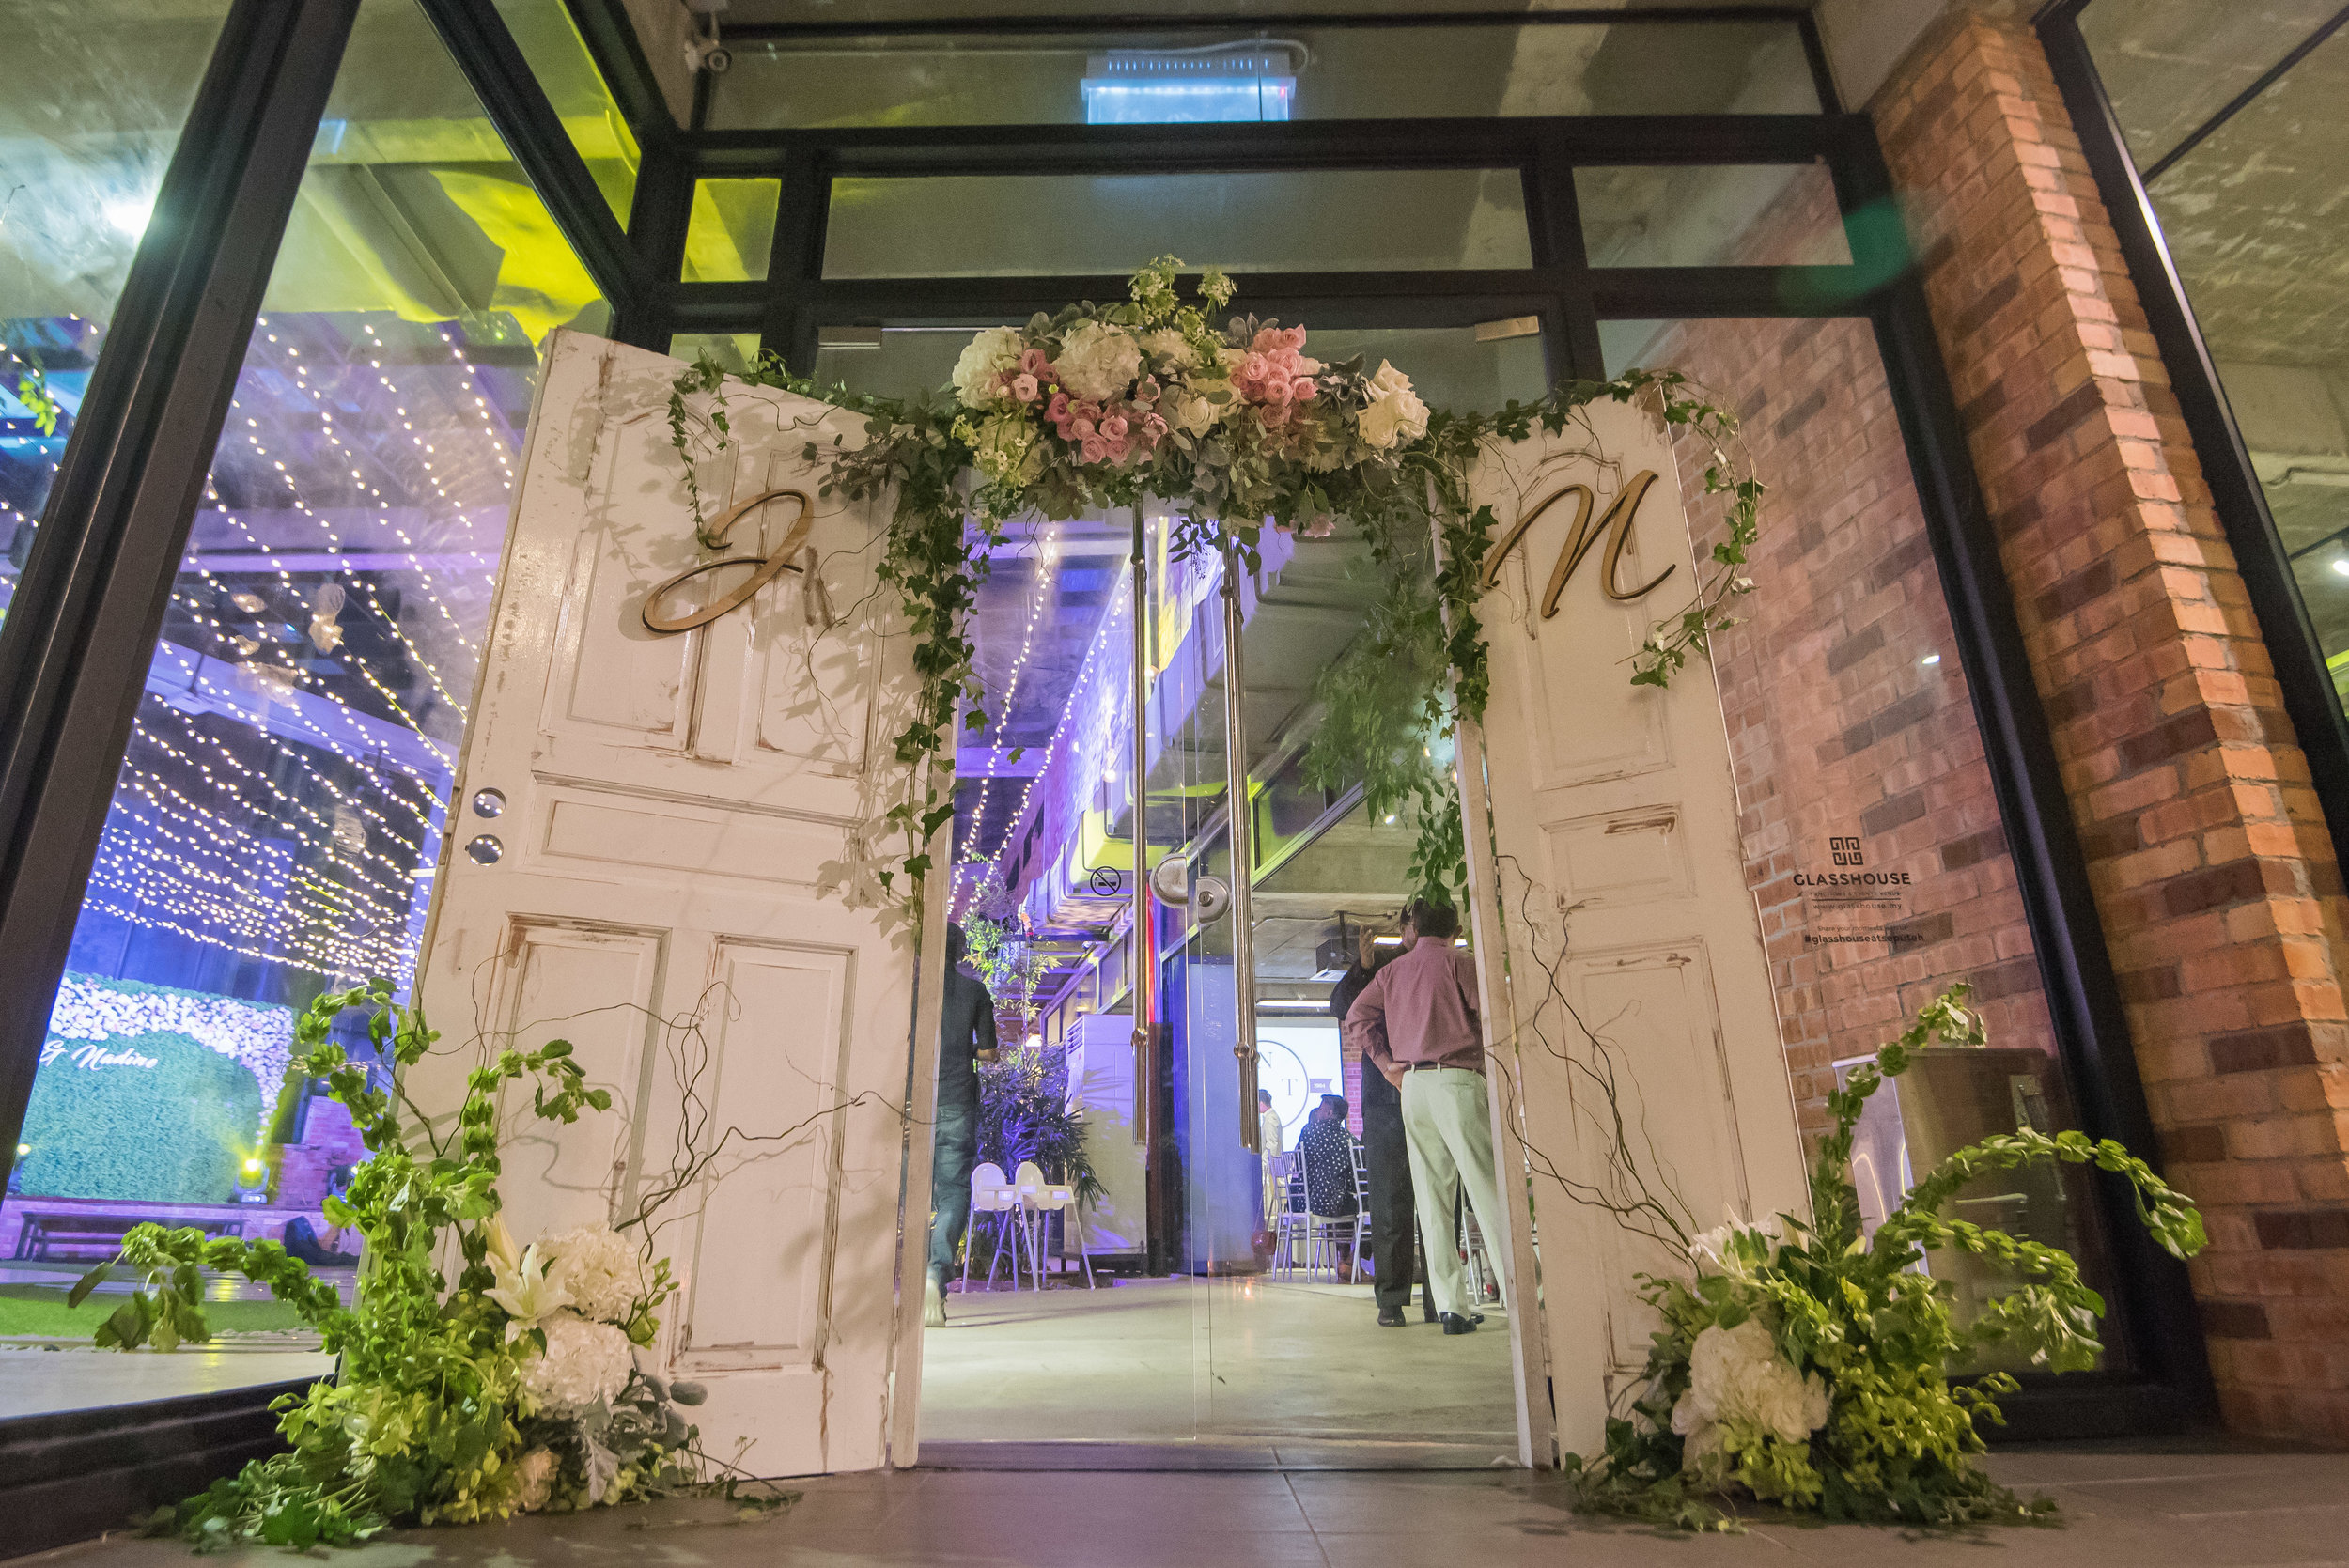 Many often forget about decorating the grand entrance. A rustic door at the entrance of the venue puts a special touch to it